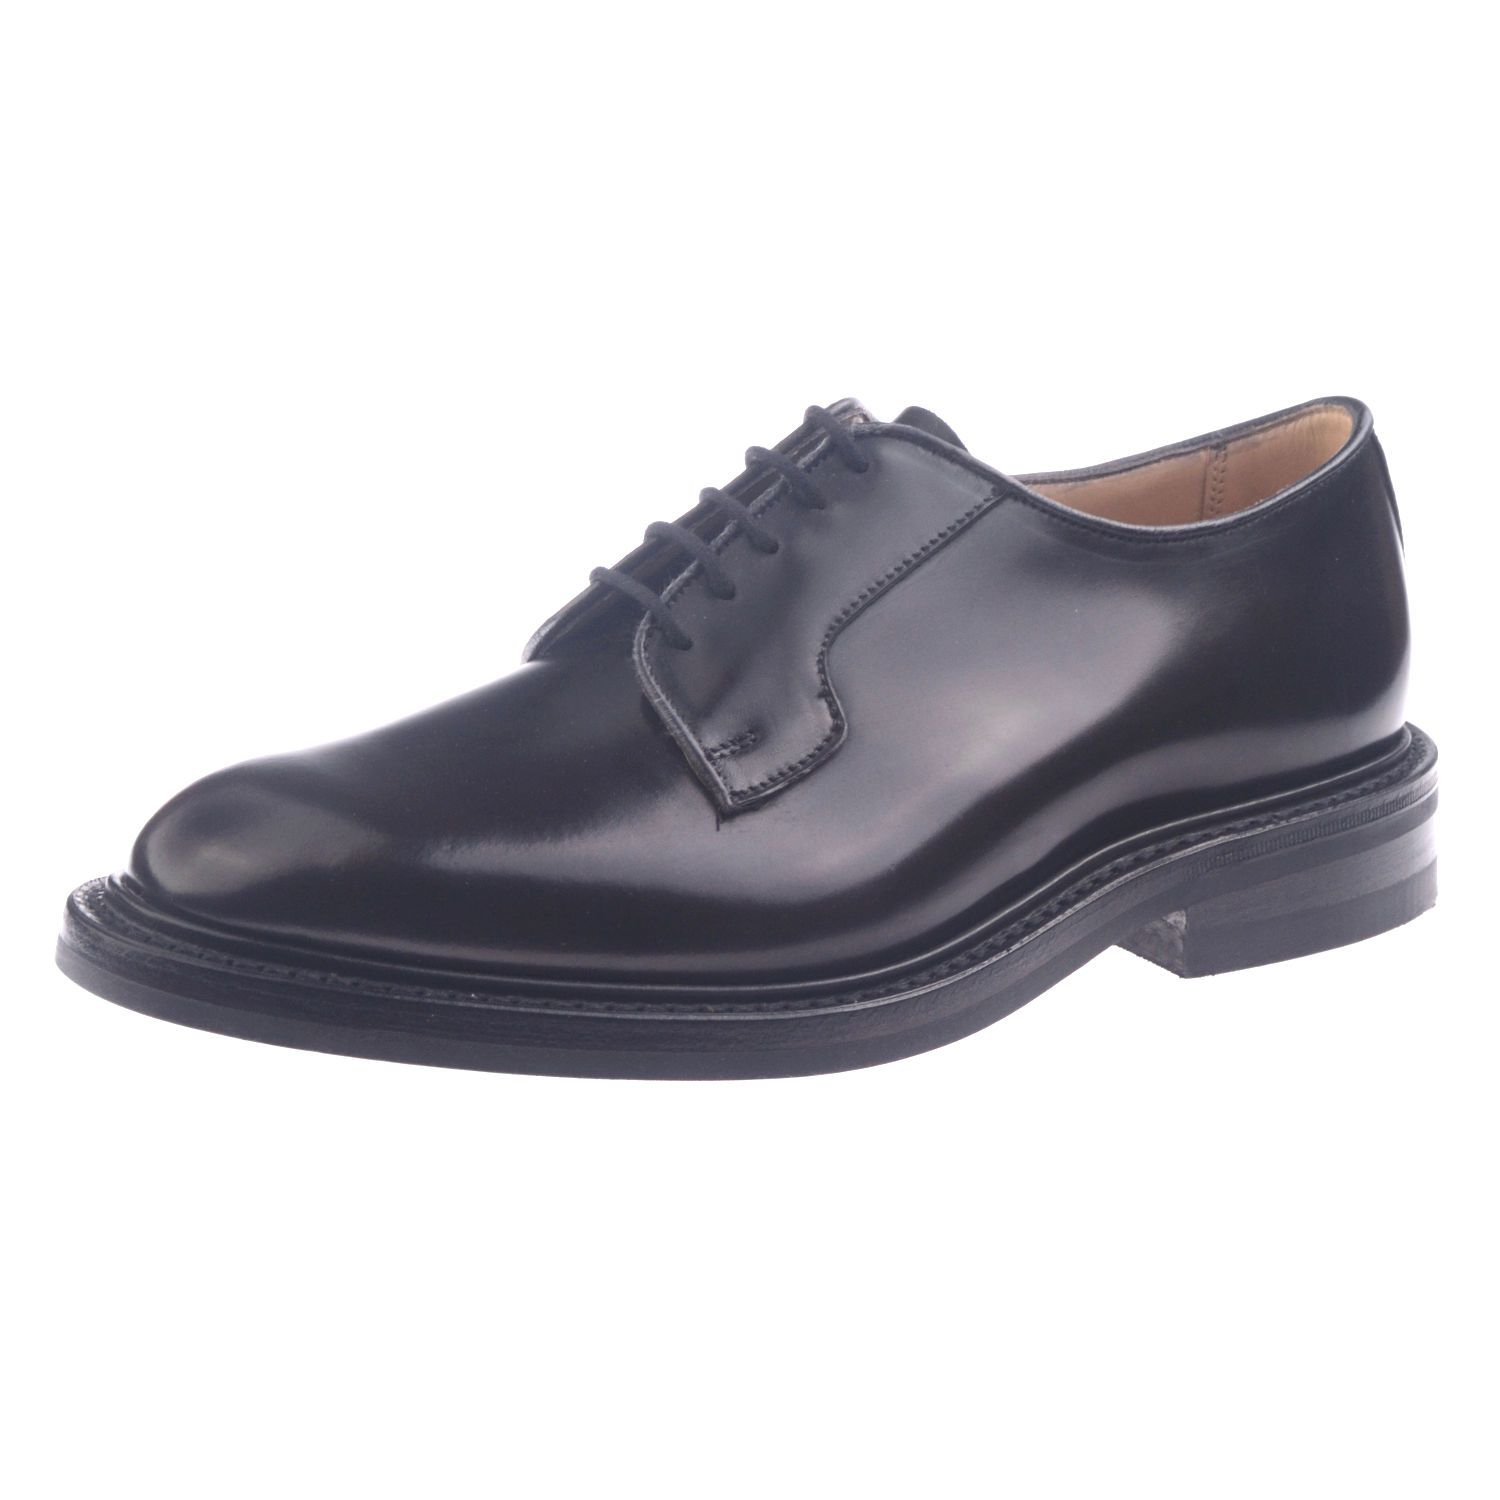 9e470dece76 New in this week - Trickers Robert in black cordovan. #trickers ...